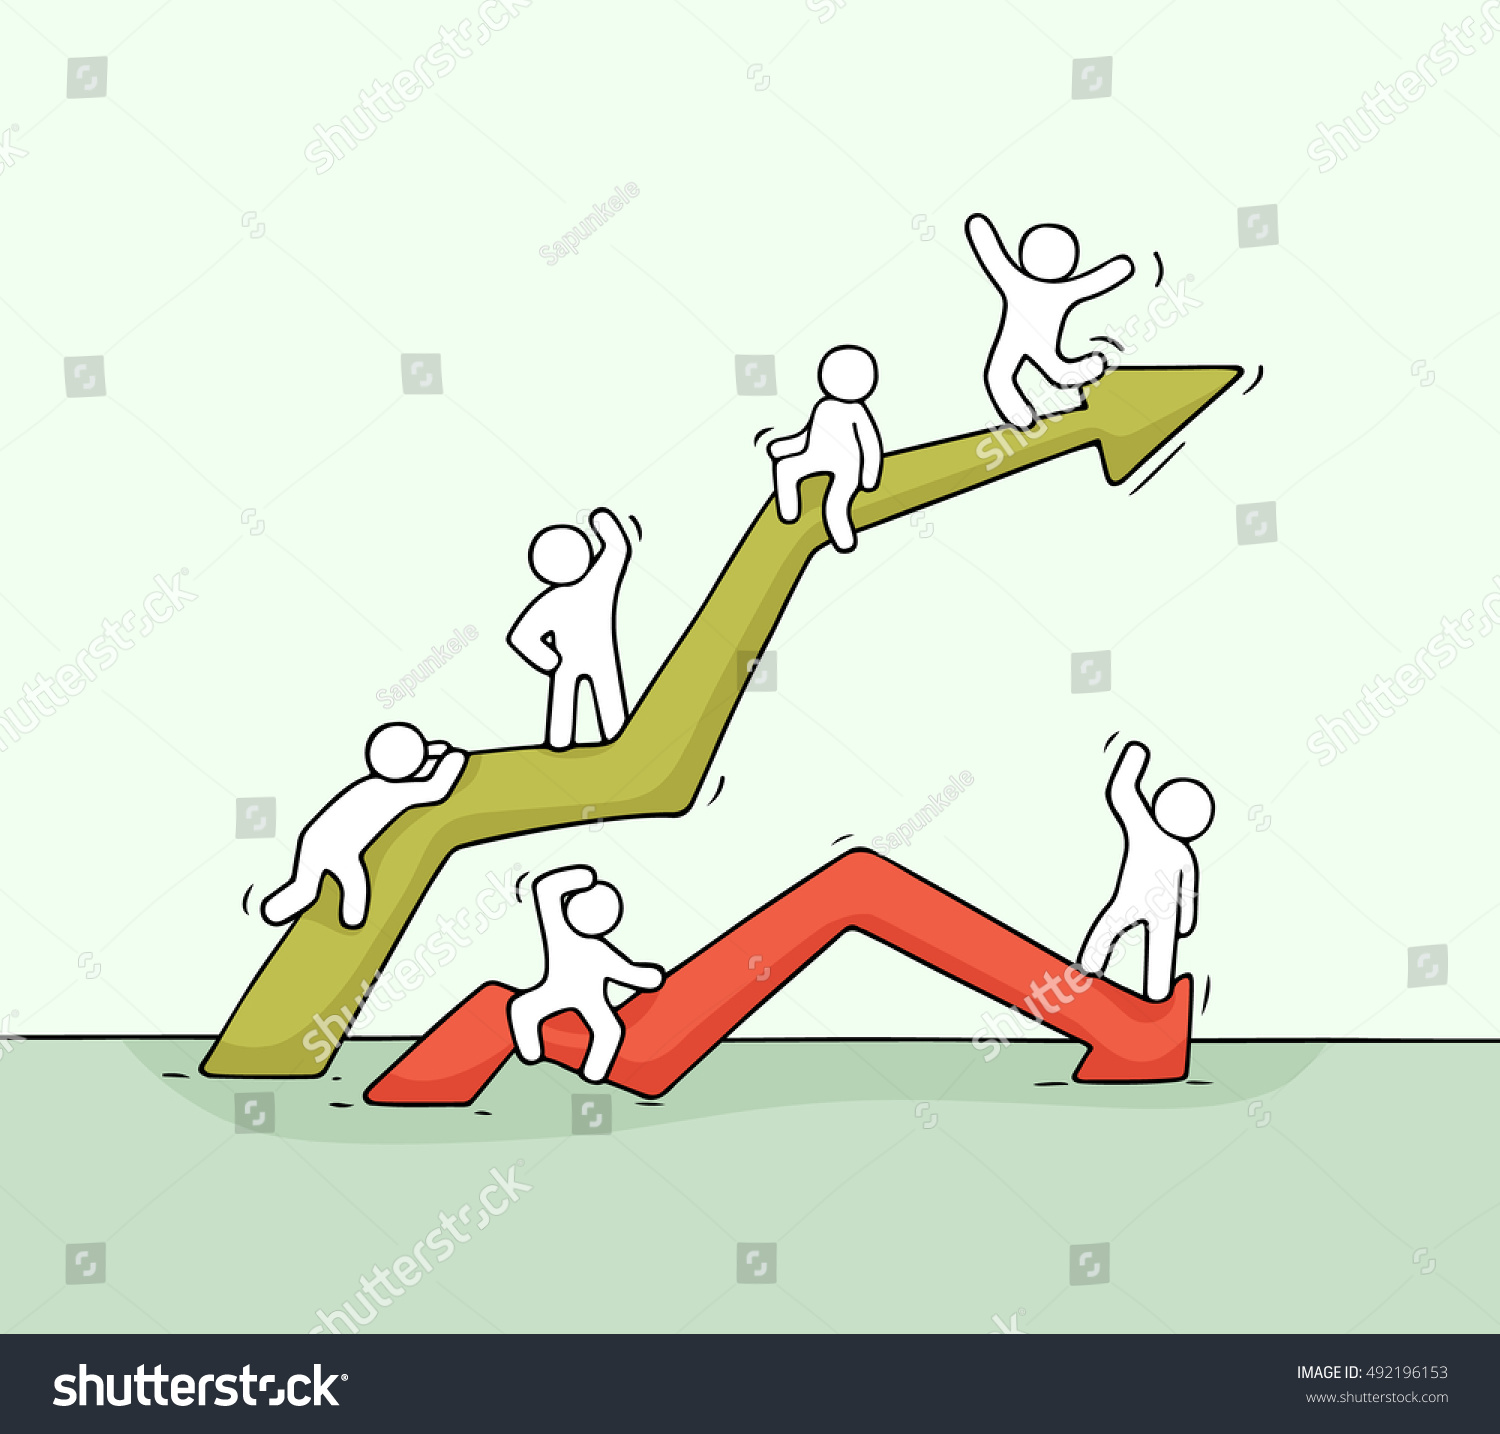 Cartoon up and down diagram with working little people Doodle cute miniature teamwork Hand drawn vector illustration for business an financial design